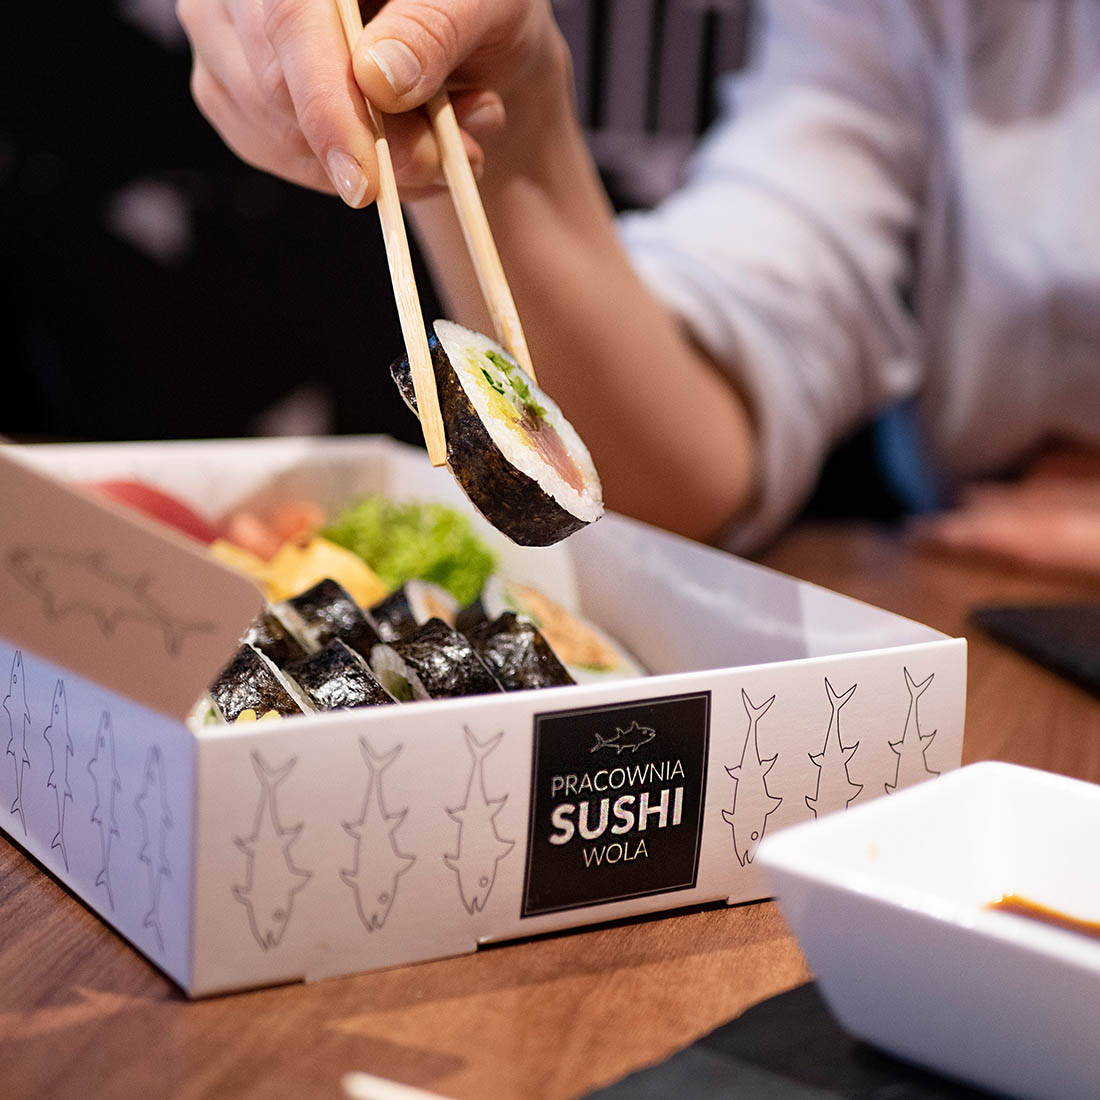 Thanks to the window in the paper box for sushi, you can easily display the food served.